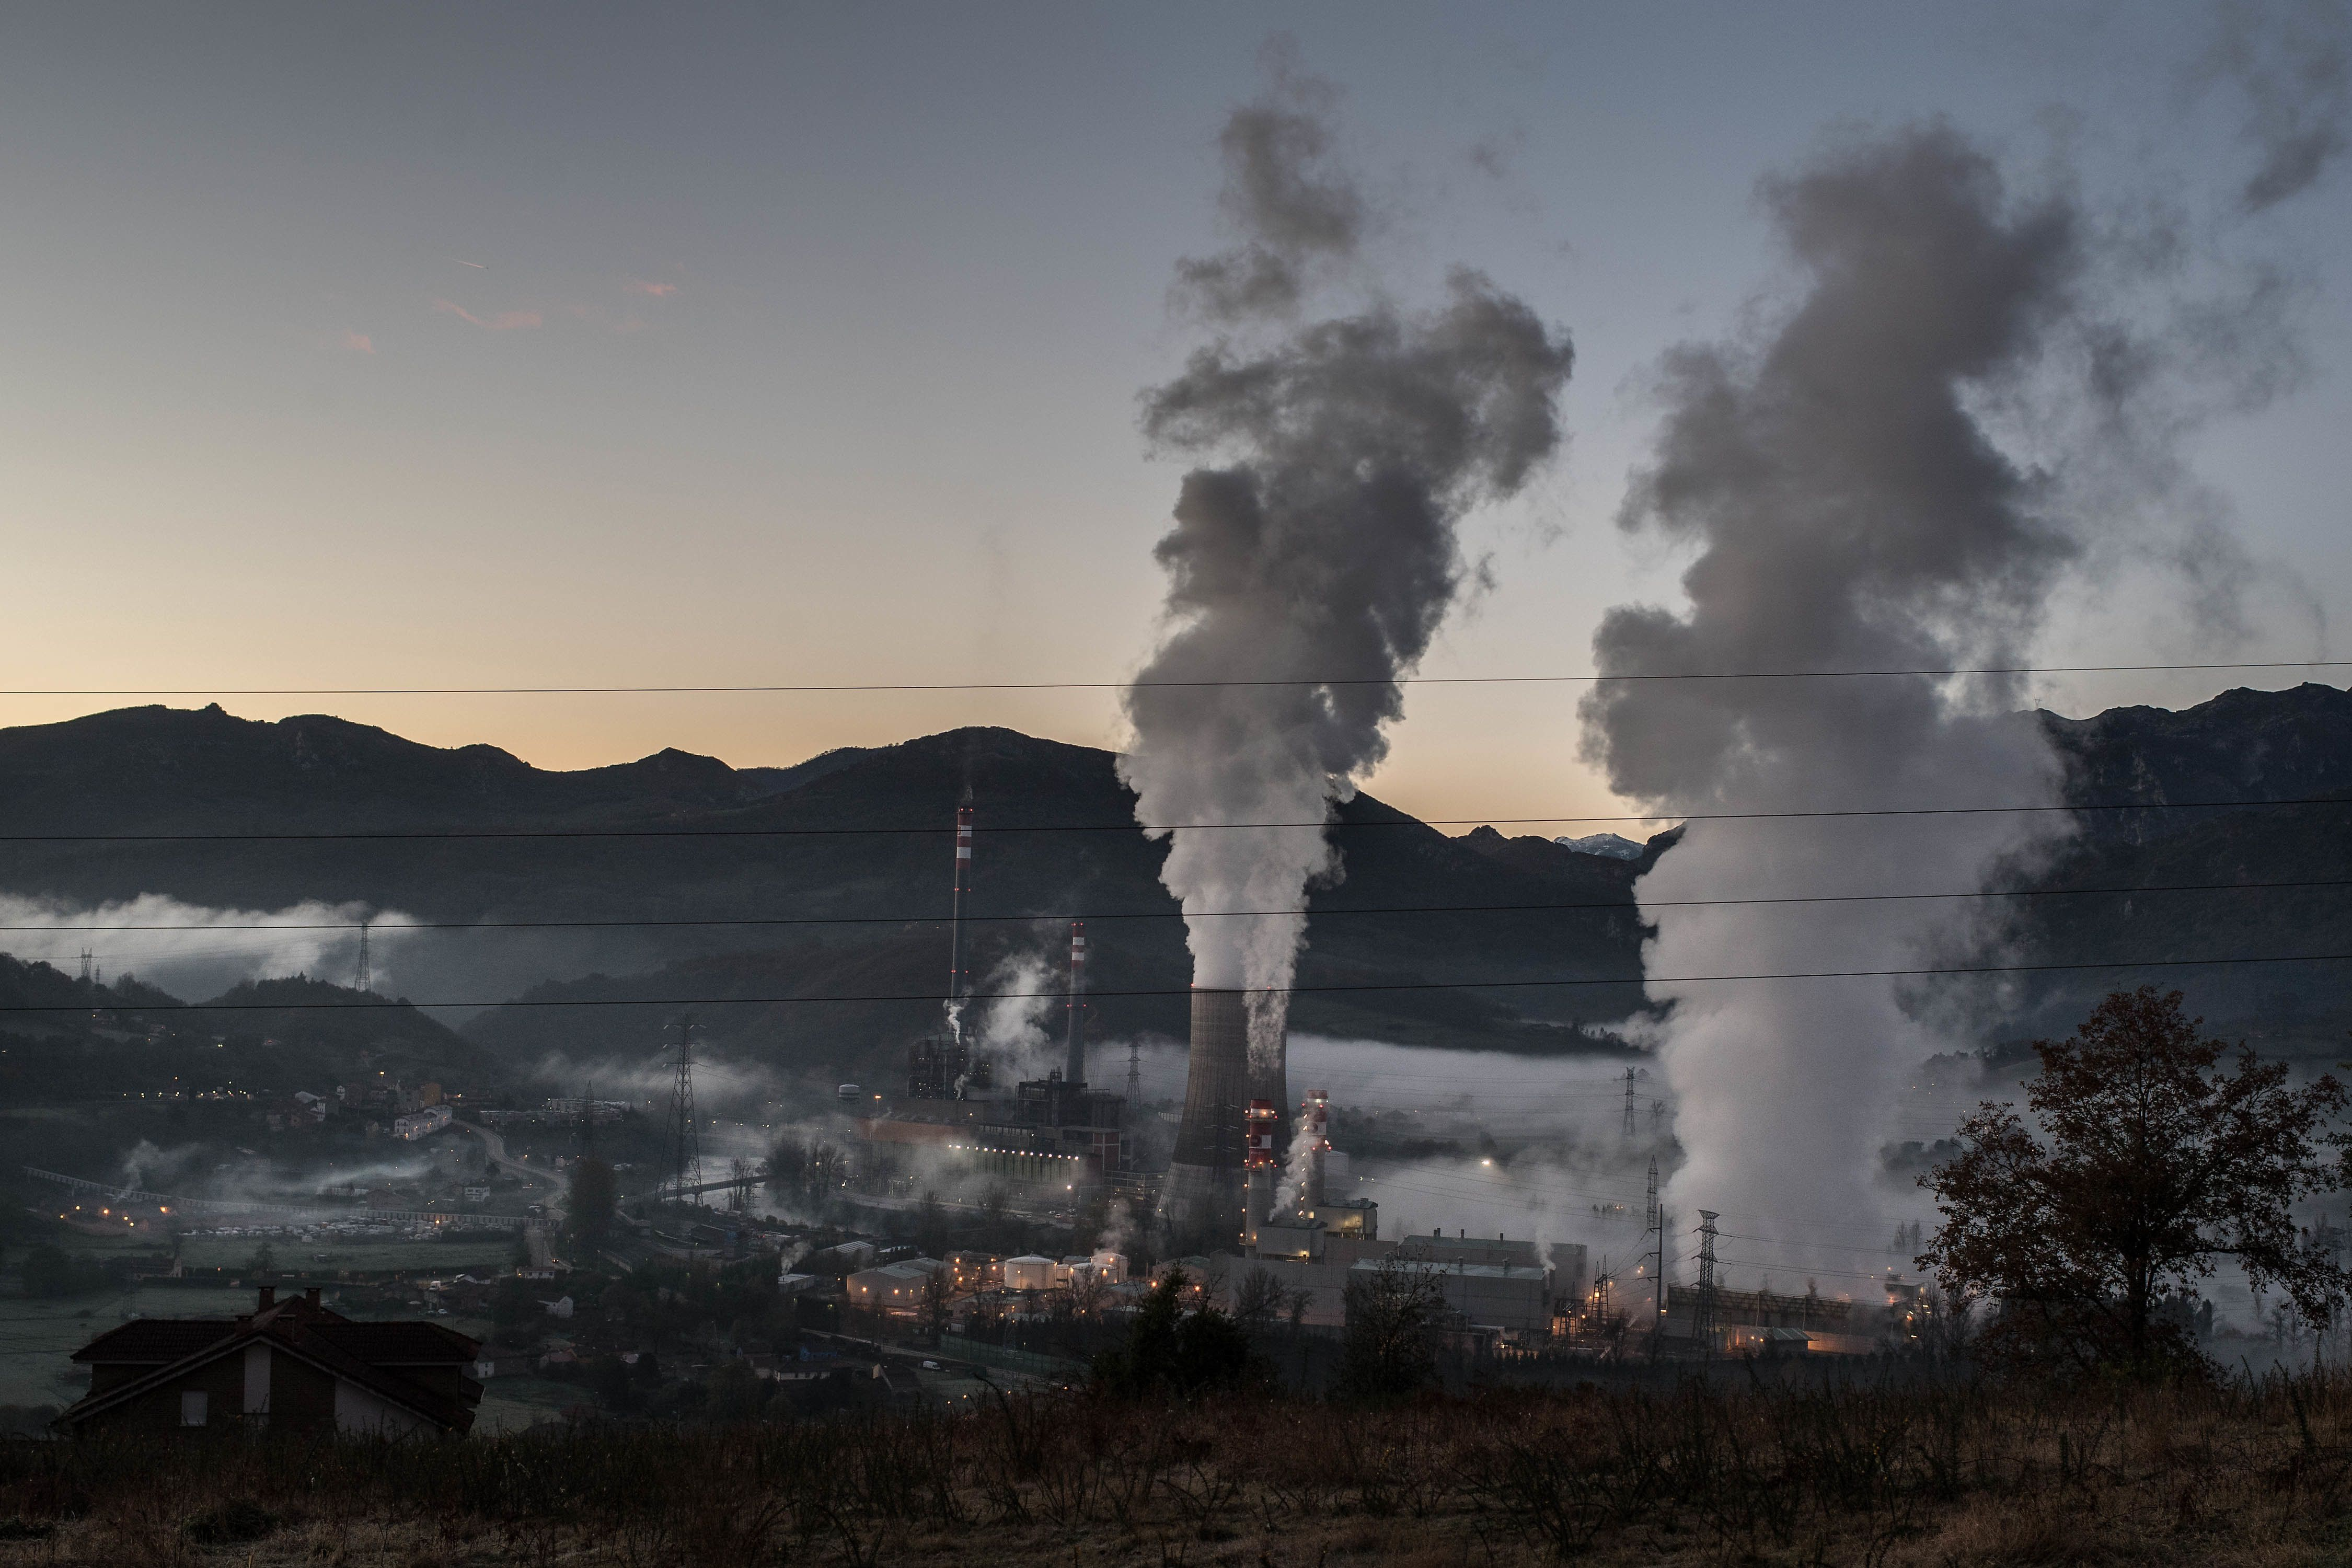 Trump Wants To Ramp Up Coal. Spain Has Found A Way To Quit It.